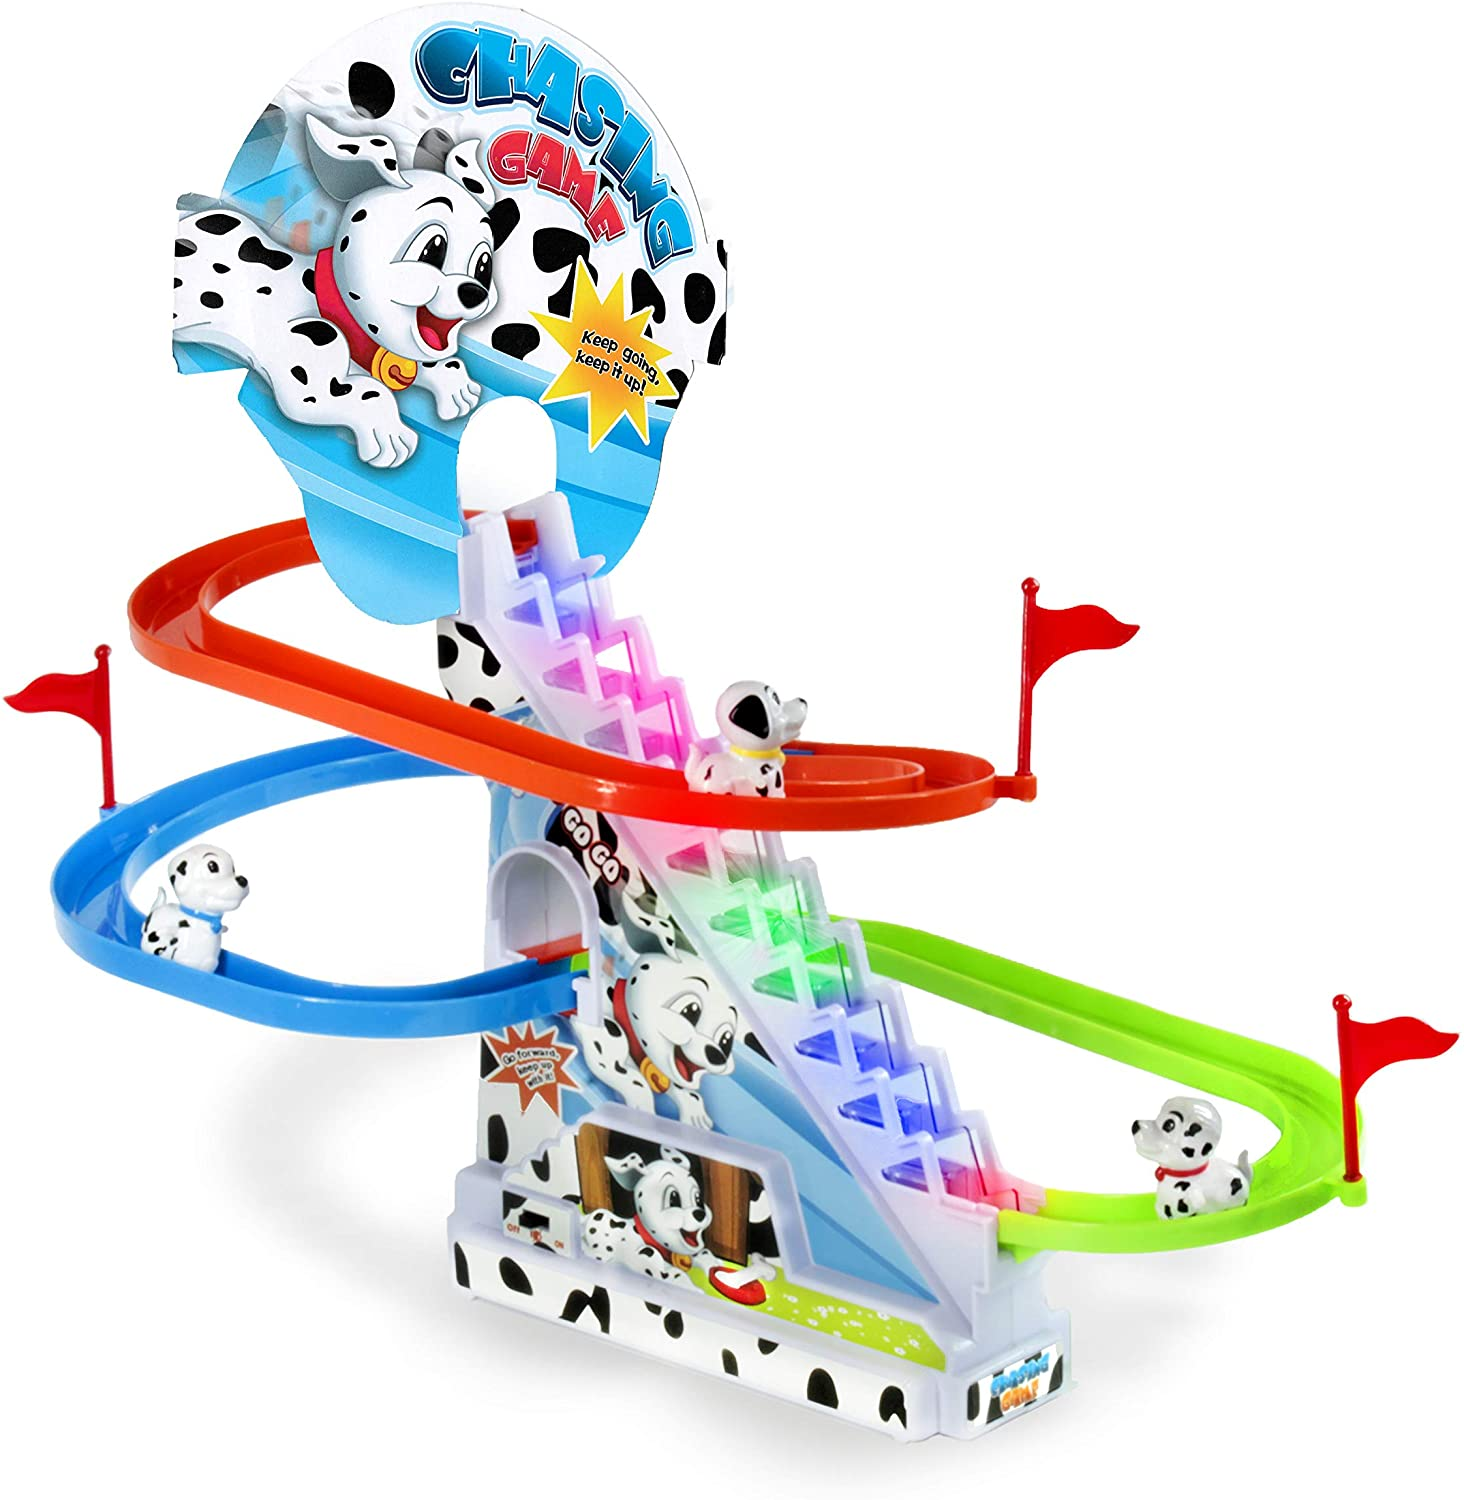 Haktoys Dalmatian Spotty Dog Chasing Playset | Playful Roller Coaster, Puppy Race Track Set with LED Flashing Lights | Music On/Off Button for Quiet Play, Safe and Durable, Gift for Toddlers & Kids